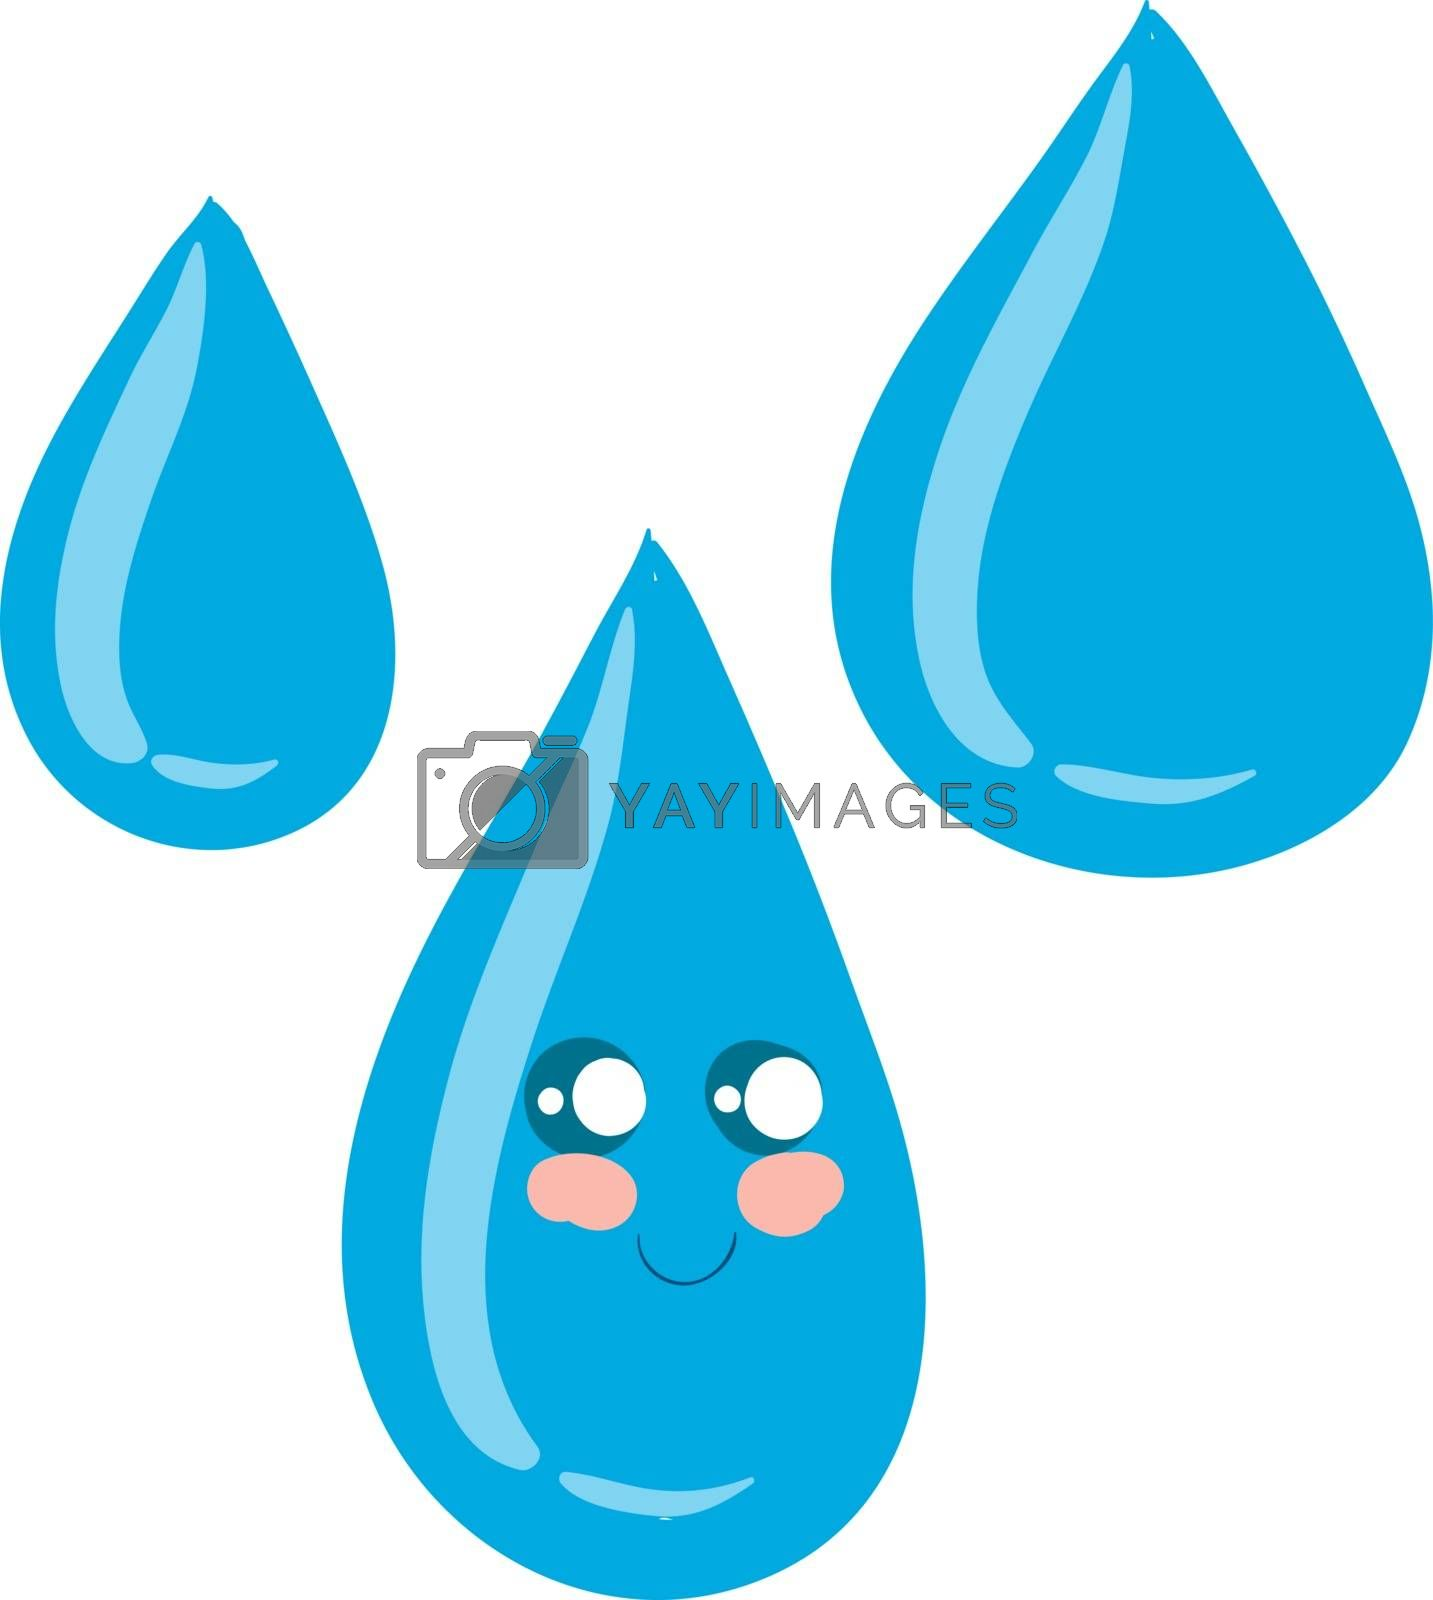 Royalty free image of Emoji of a cute water drop vector or color illustration by Morphart